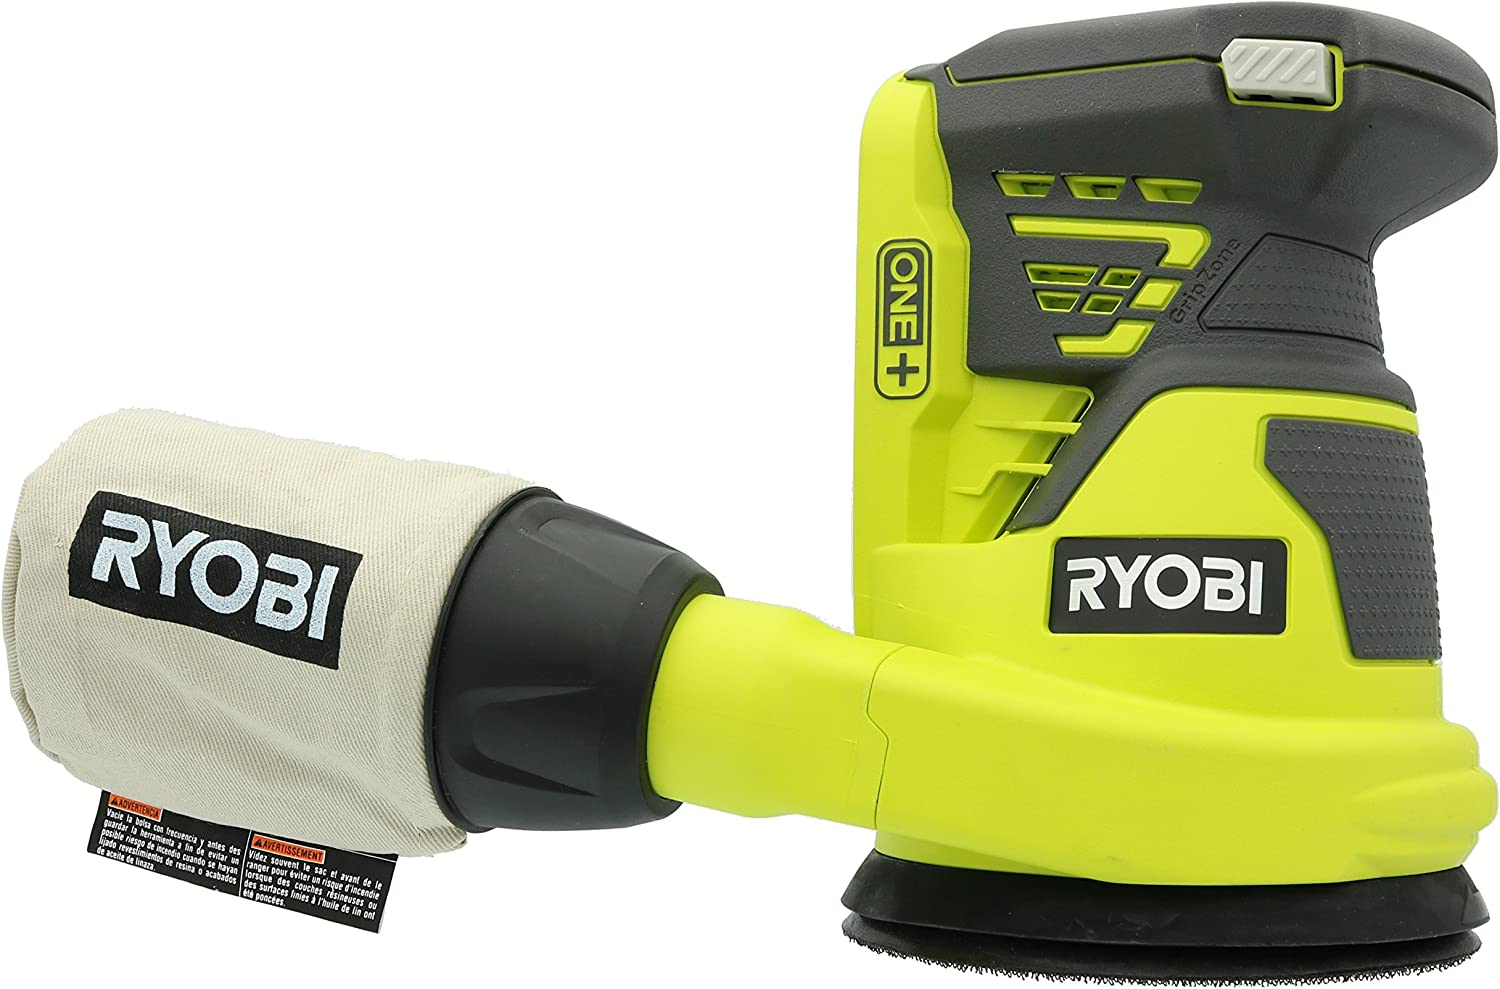 Ryobi P411 One 18 Volt 5 Inch Cordless Battery Operated Random Orbit Power Sander Battery Not Included Power Tool Only